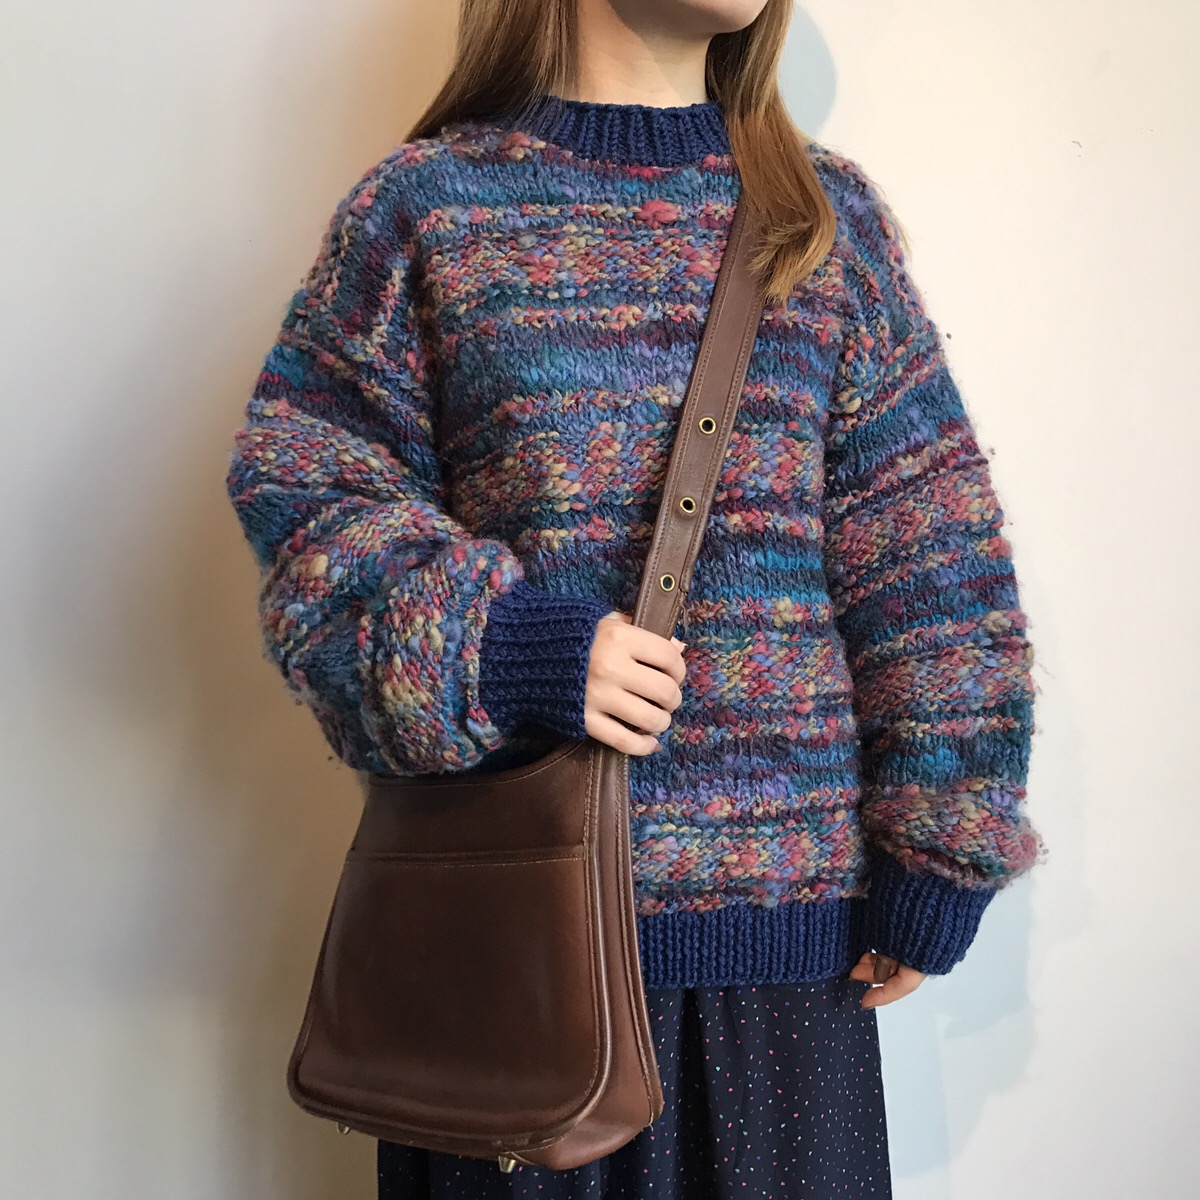 90s rainbow sweater, 90s dot skirt made in USA, old coach shoulder bag made in USA